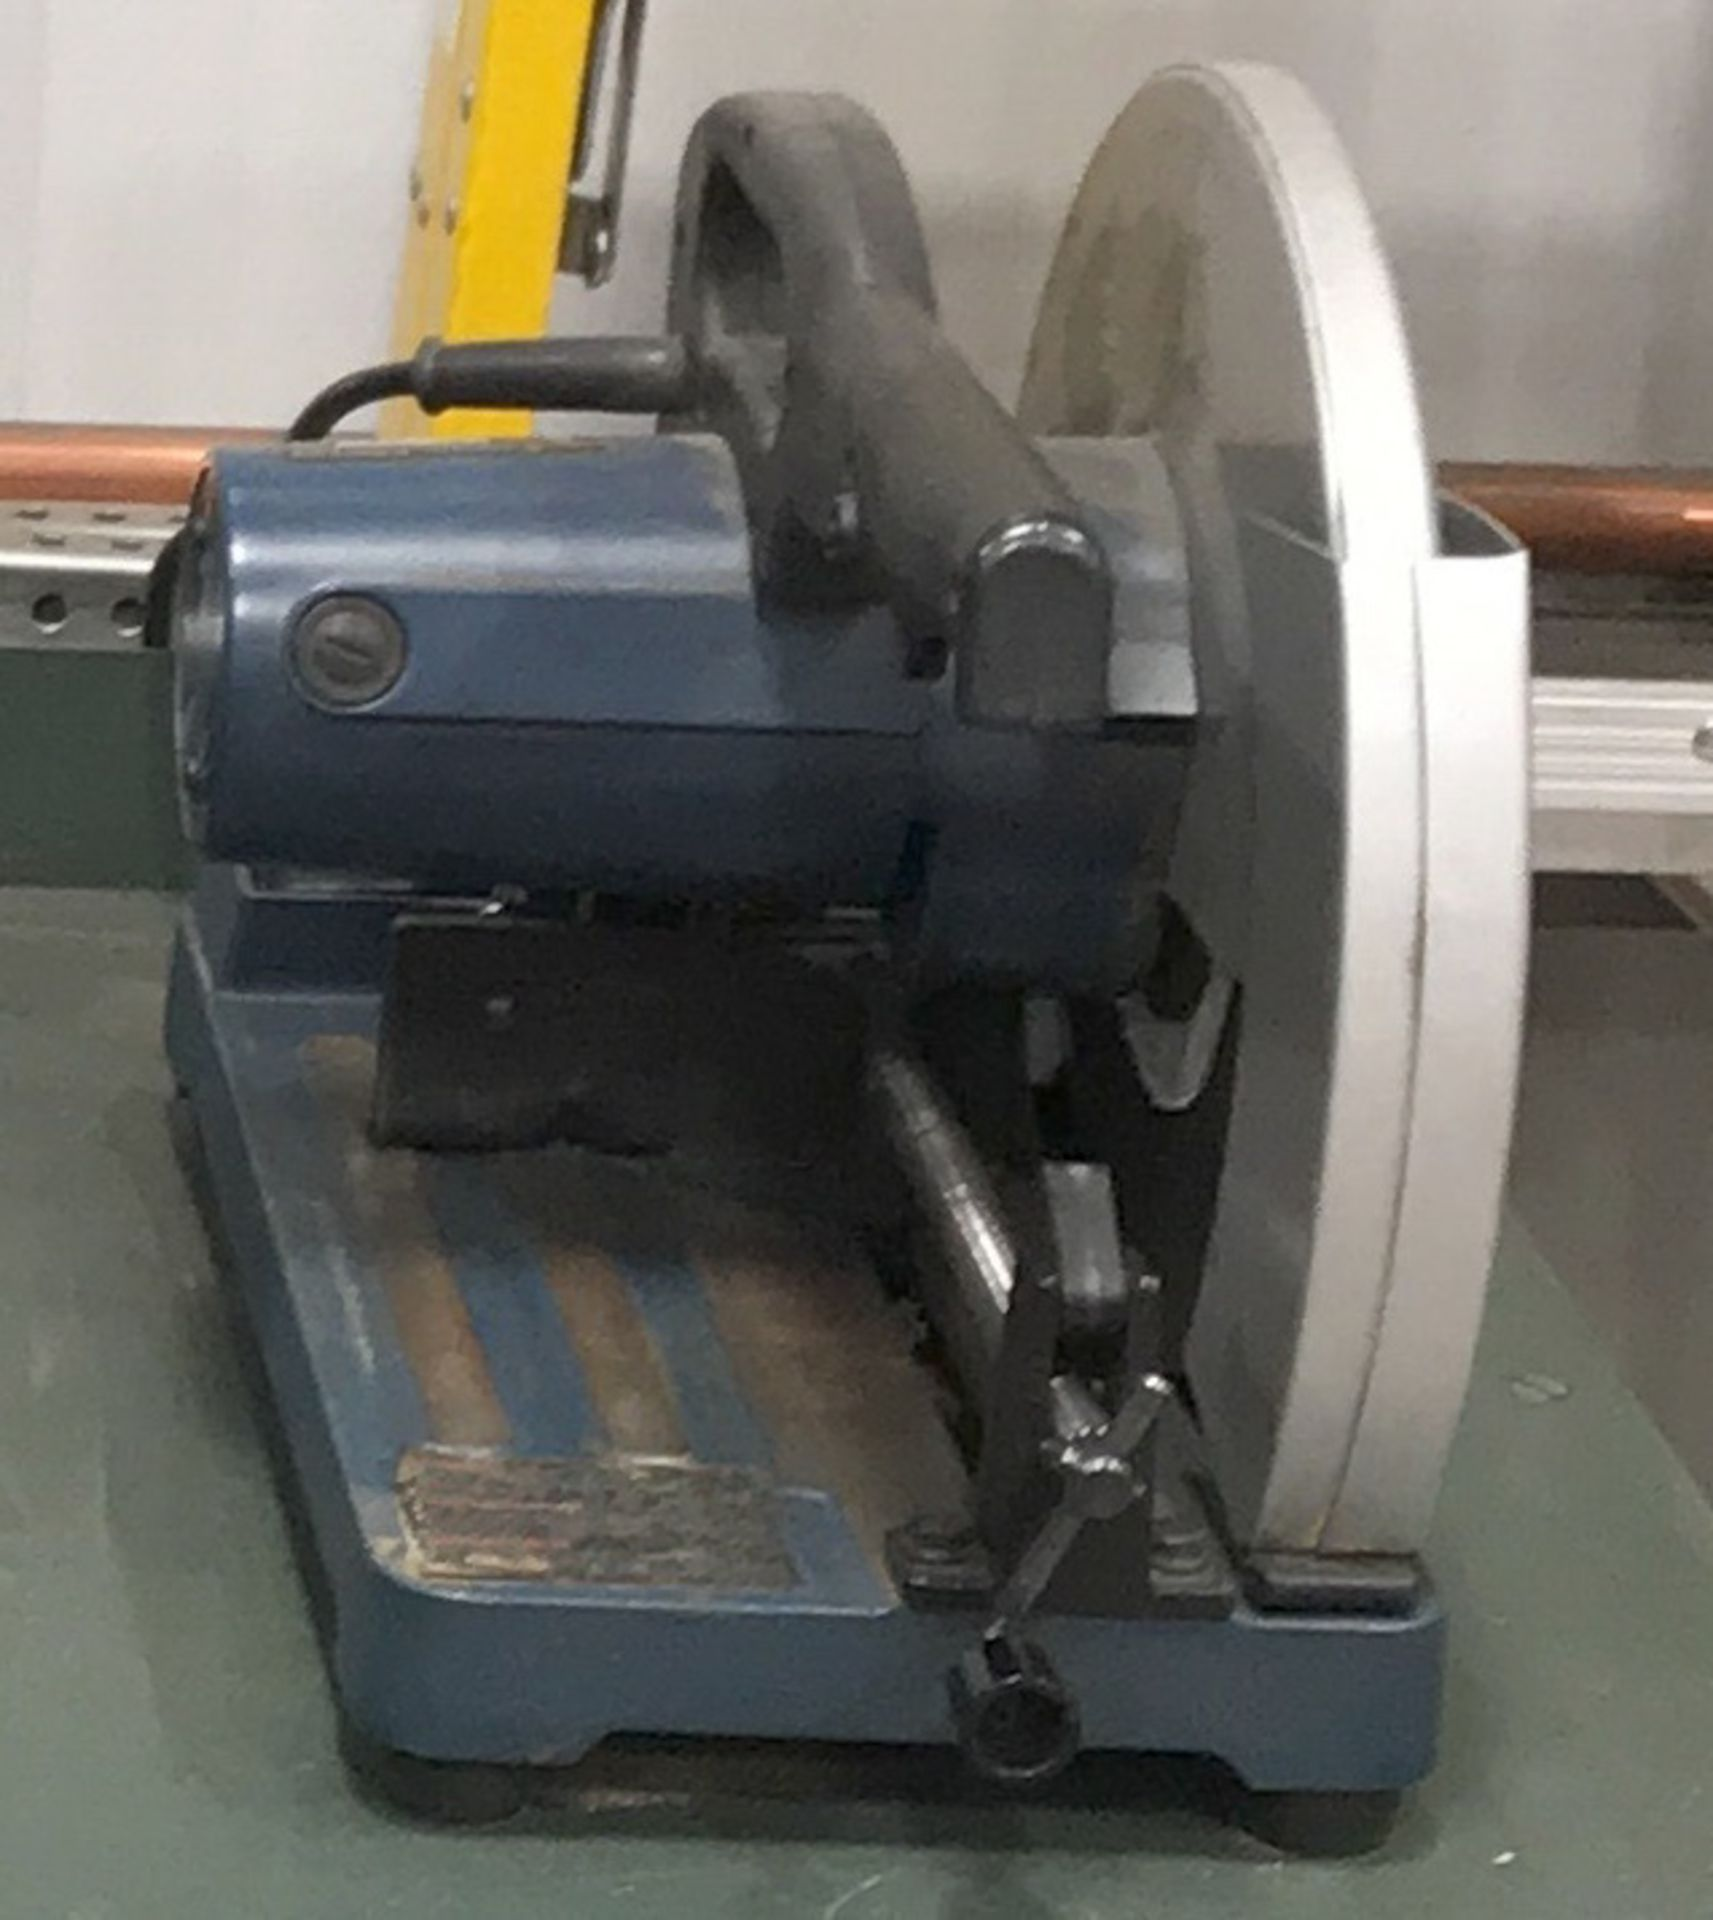 METAL CUTTING BENCH-TOP ABRASIVE SAW [RIGGING FEES FOR LOT# 2 - $25 USD PLUS APPLICABLE TAXES]